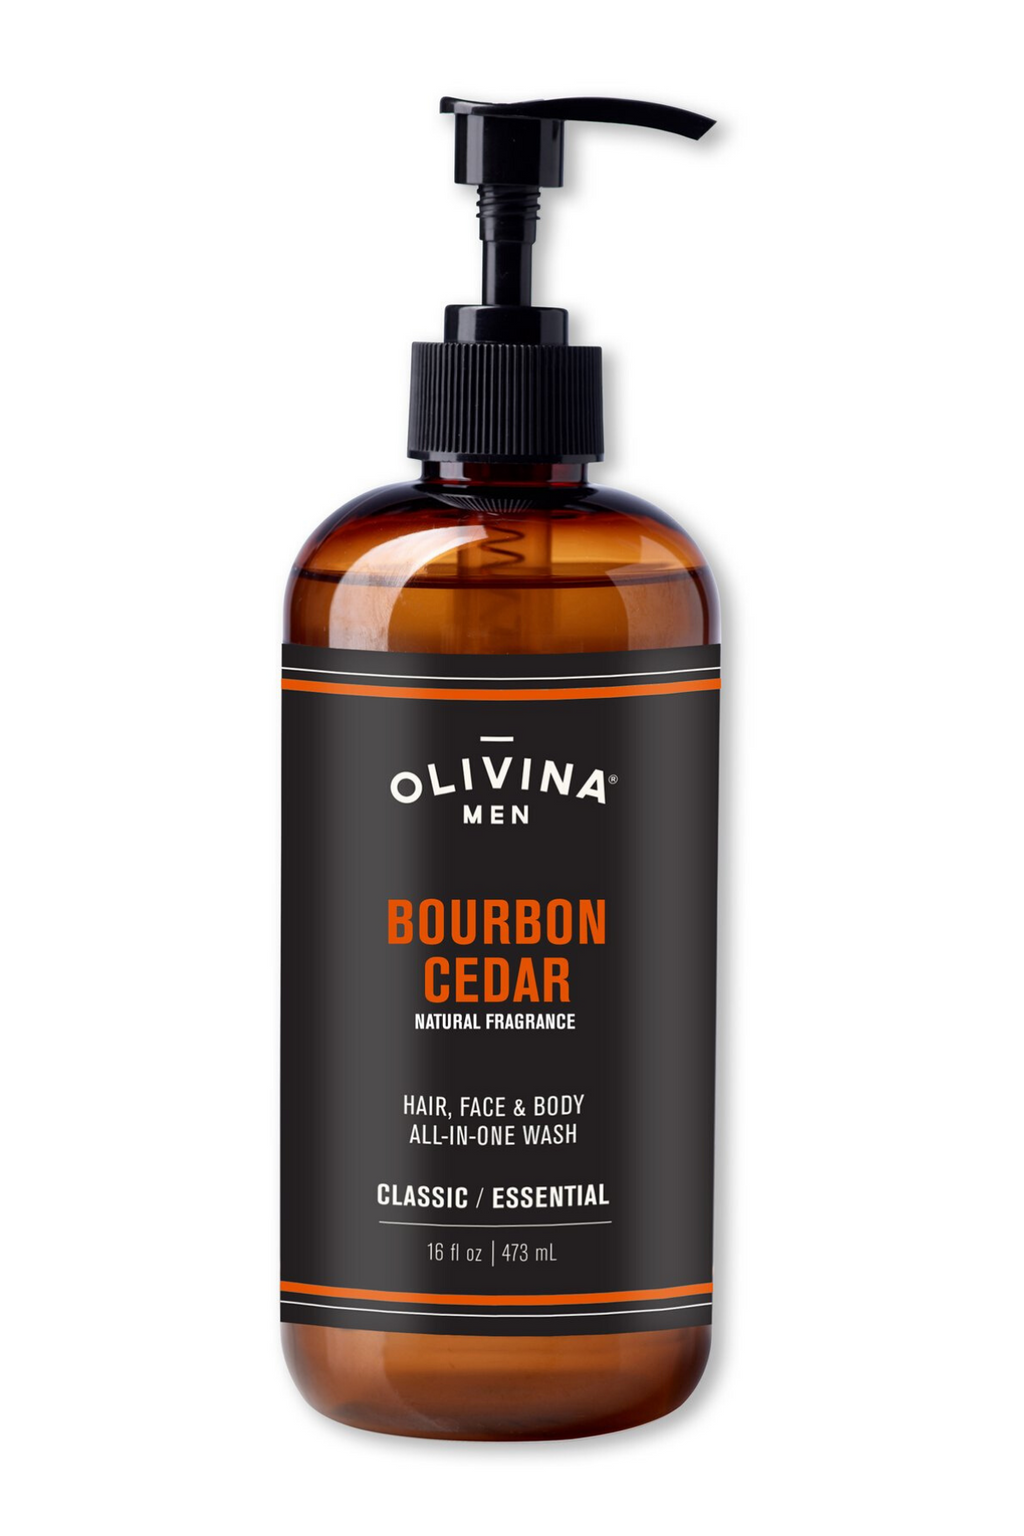 All-In-One Body Wash - Bourbon Cedar